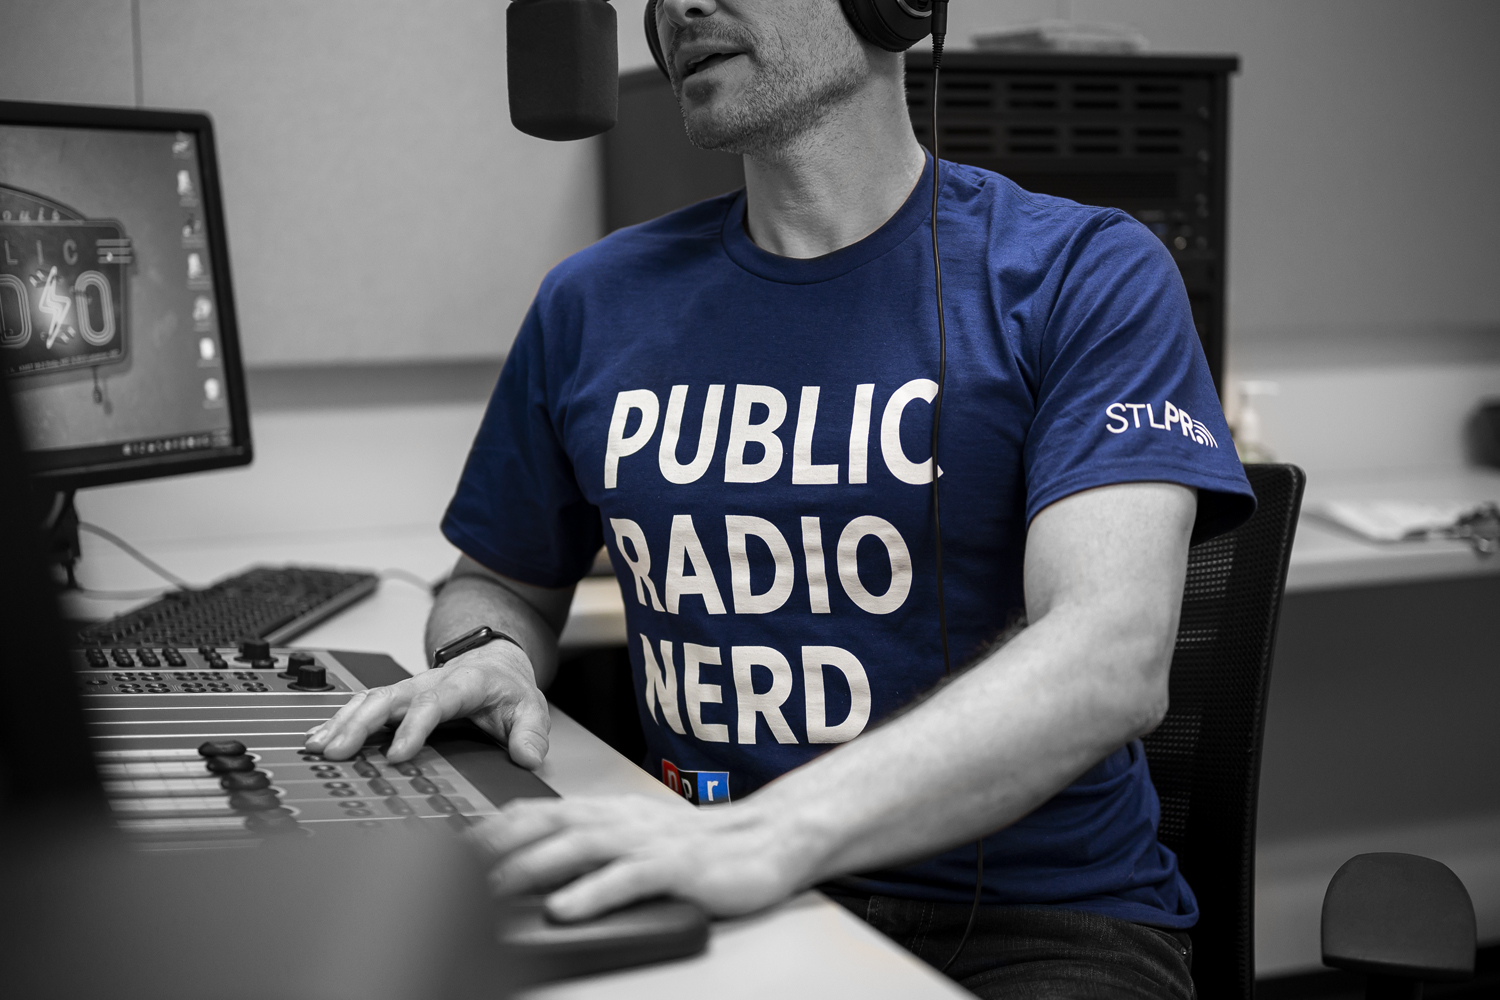 A man speaks into a microphone, his hands on a soundboard. His shirt reads 'Public Radio Nerd'